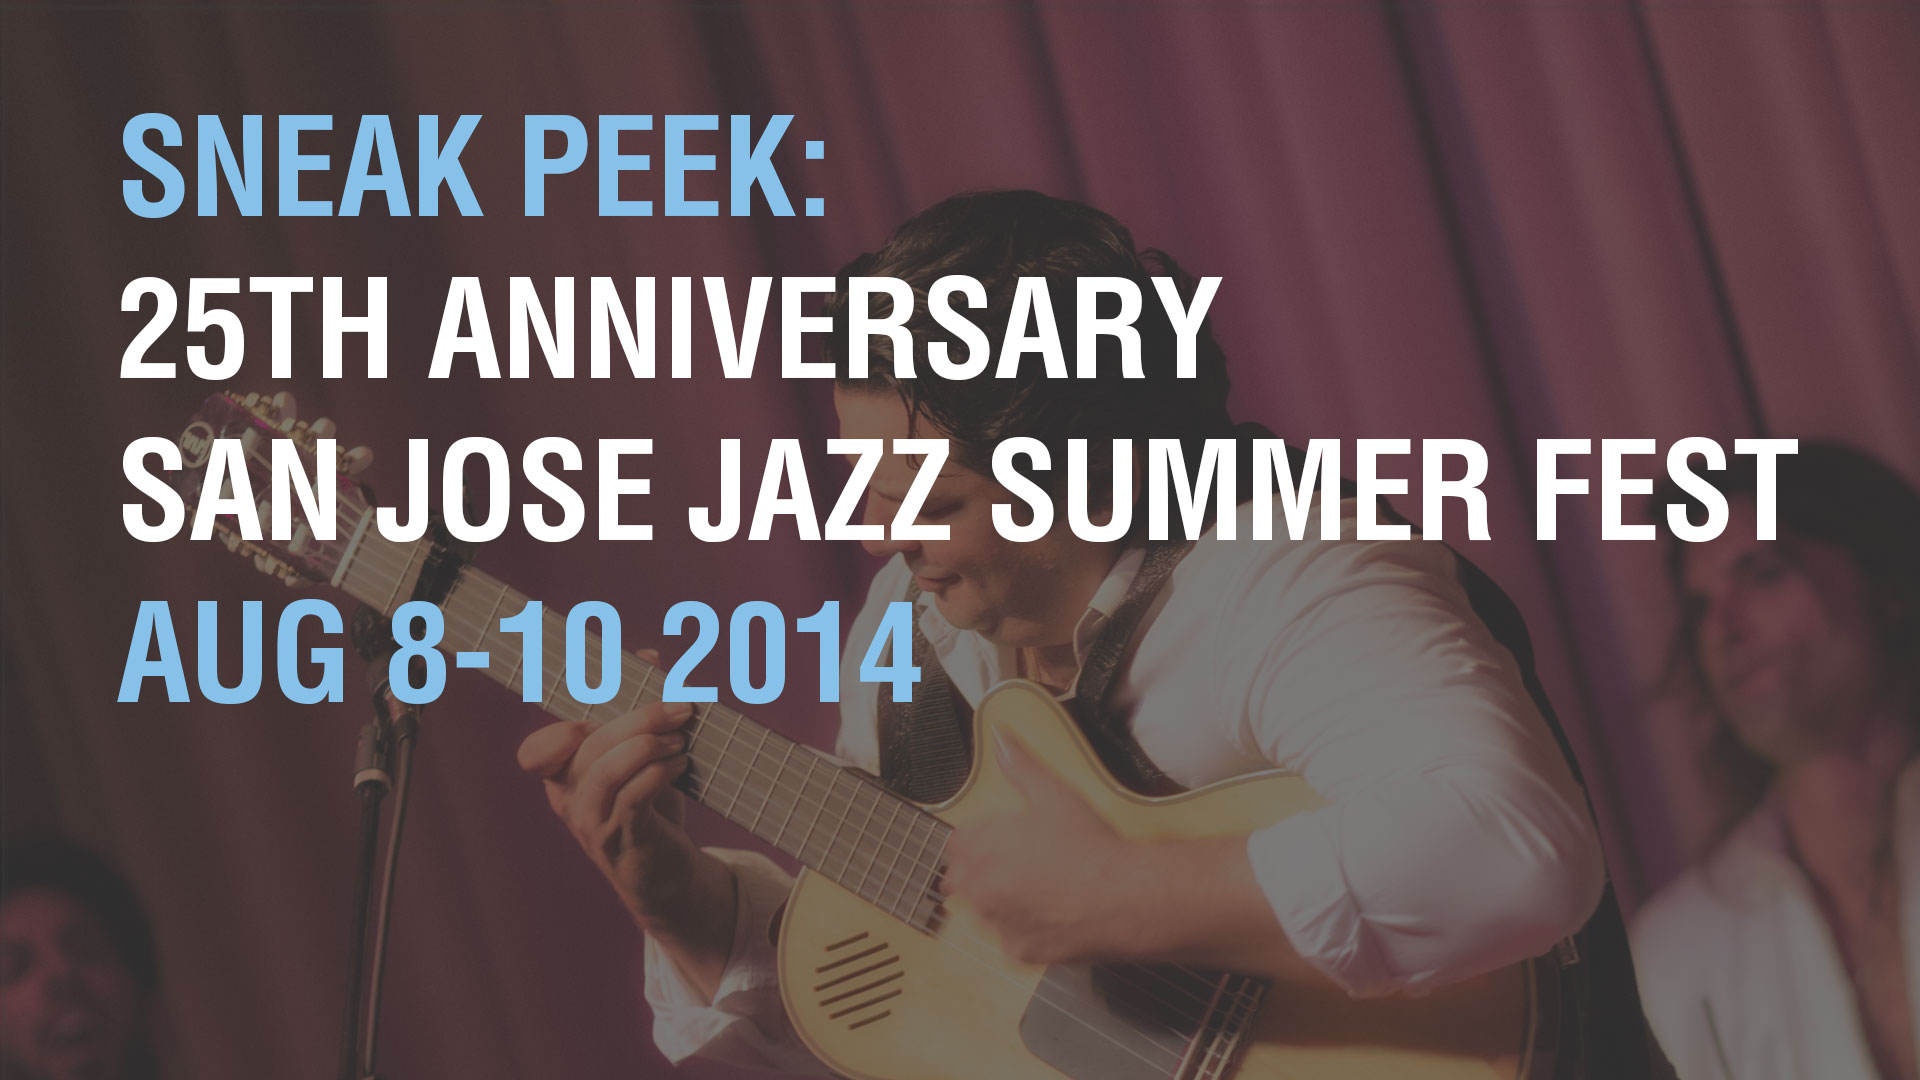 Click for a sneak peek of Summer Fest 2014